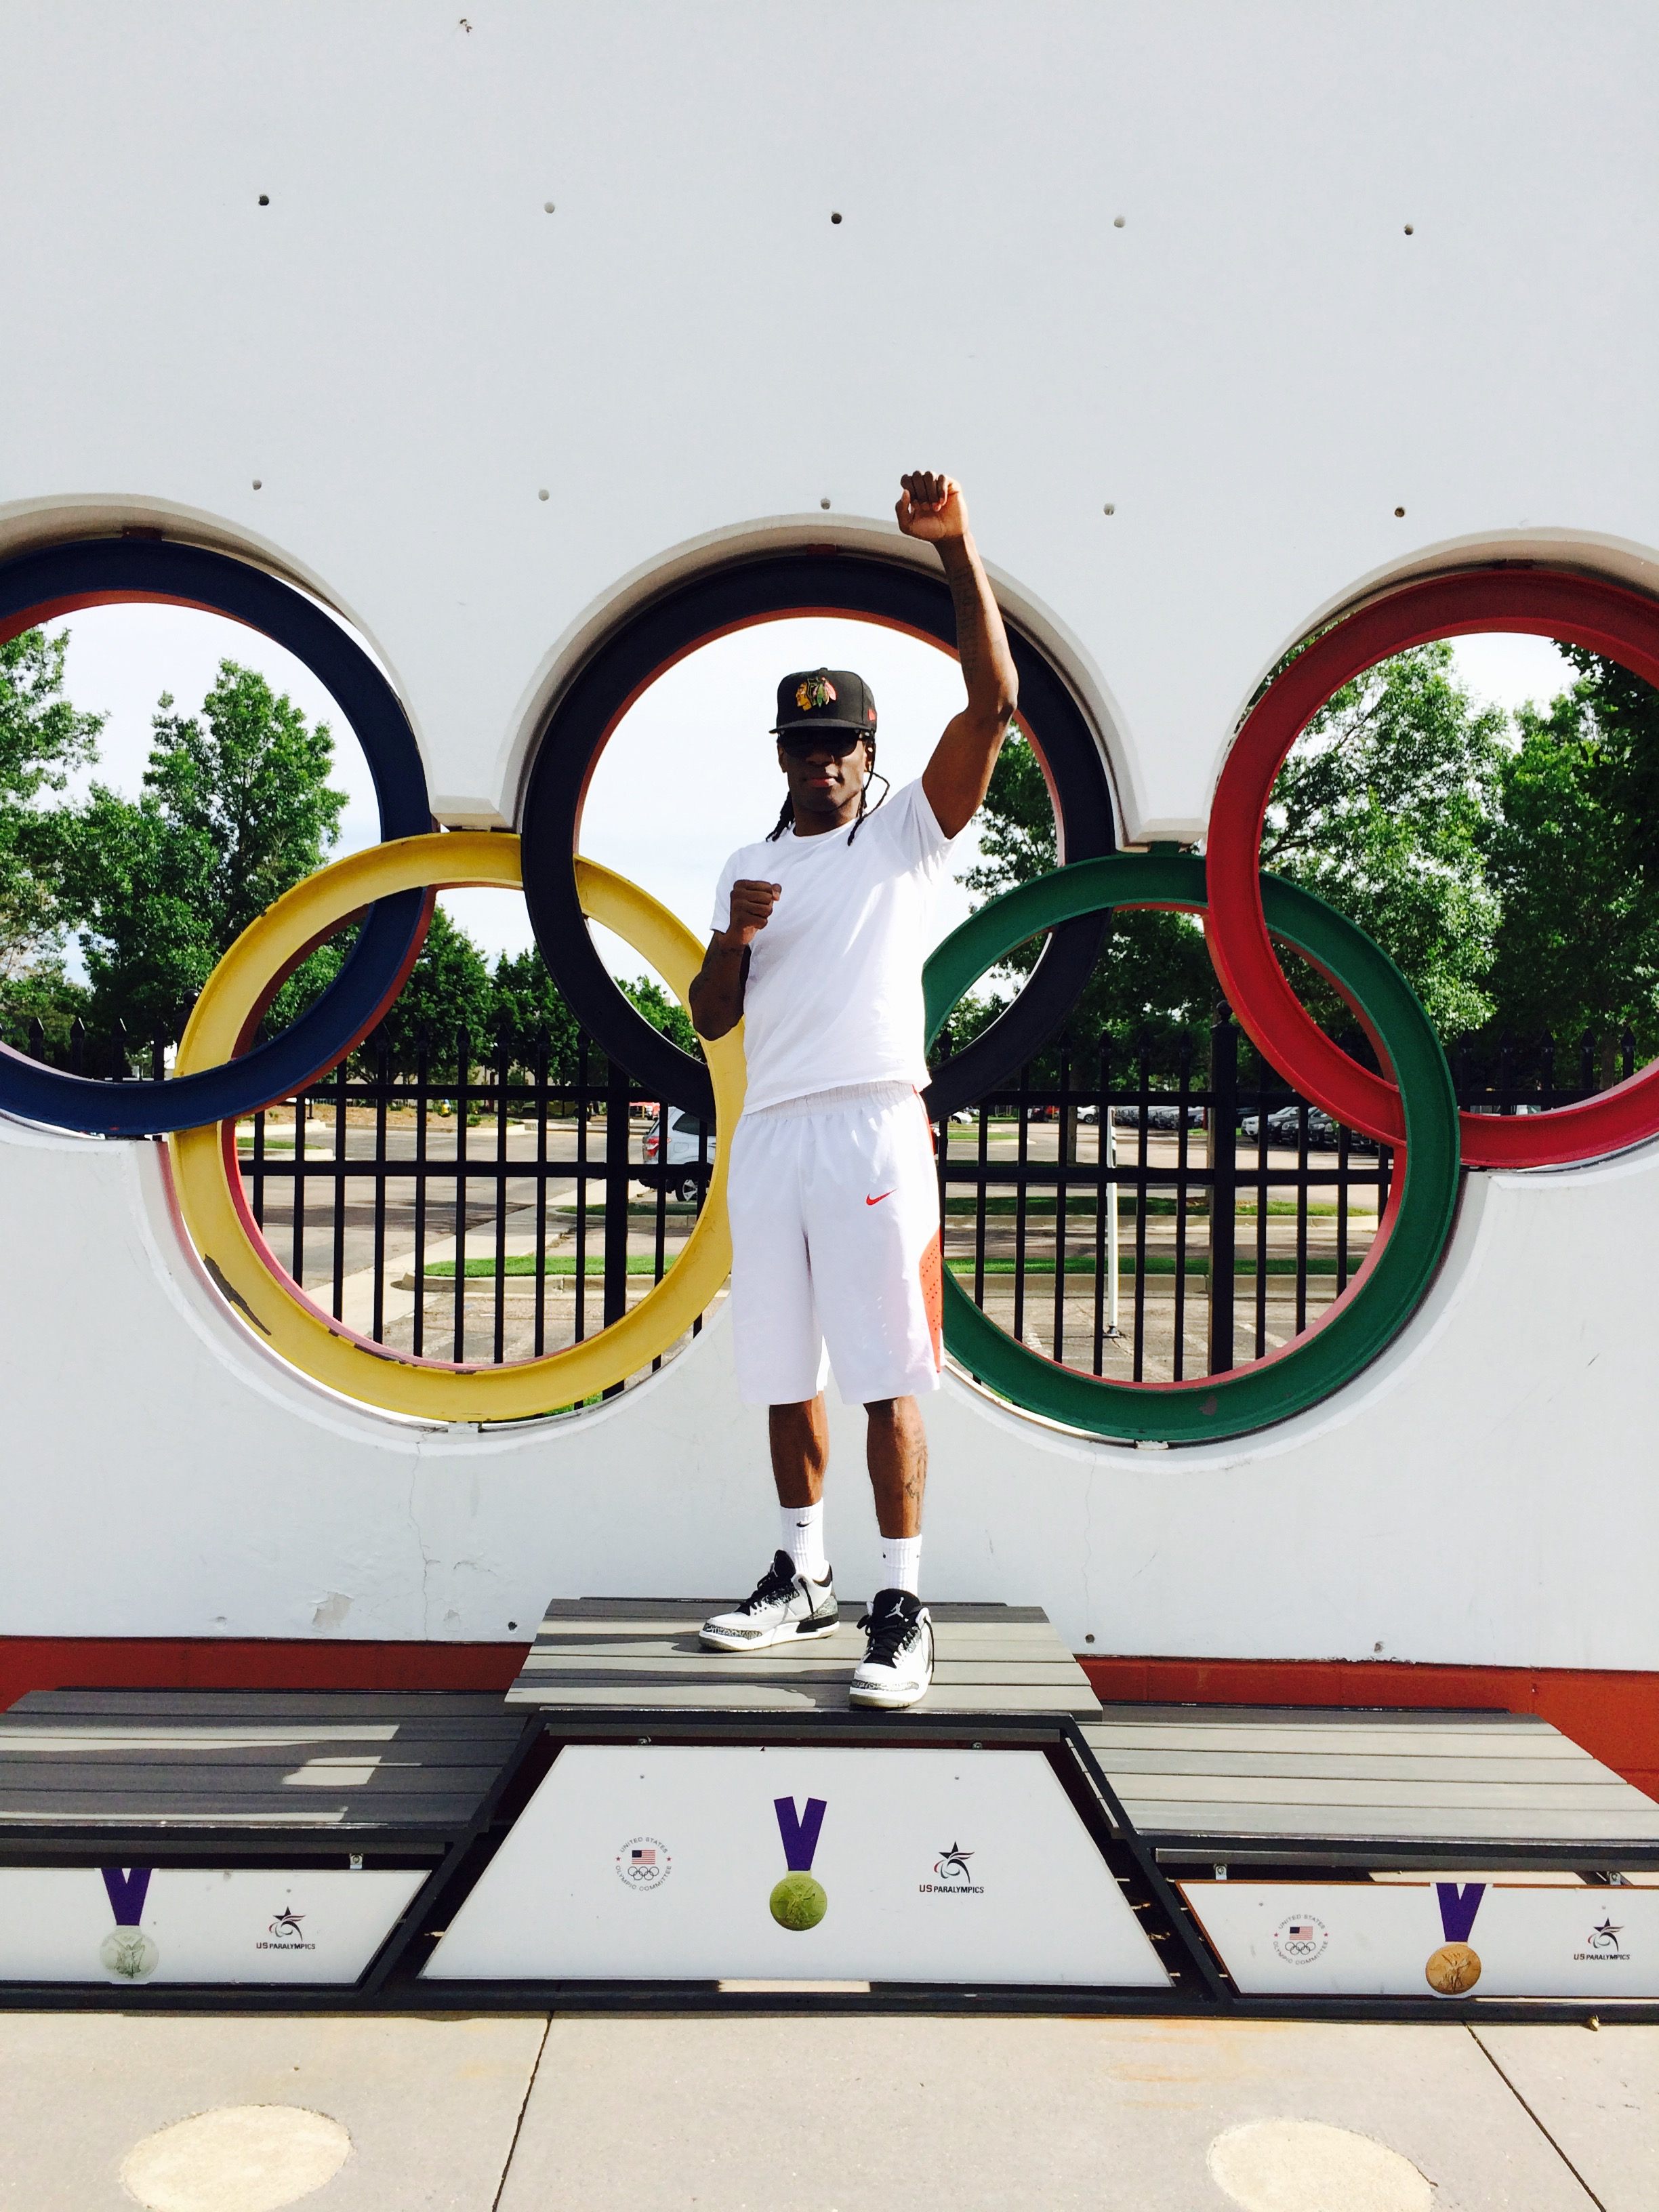 Chris outside the US Olympic Boxing training center in Colorado Springs in June.